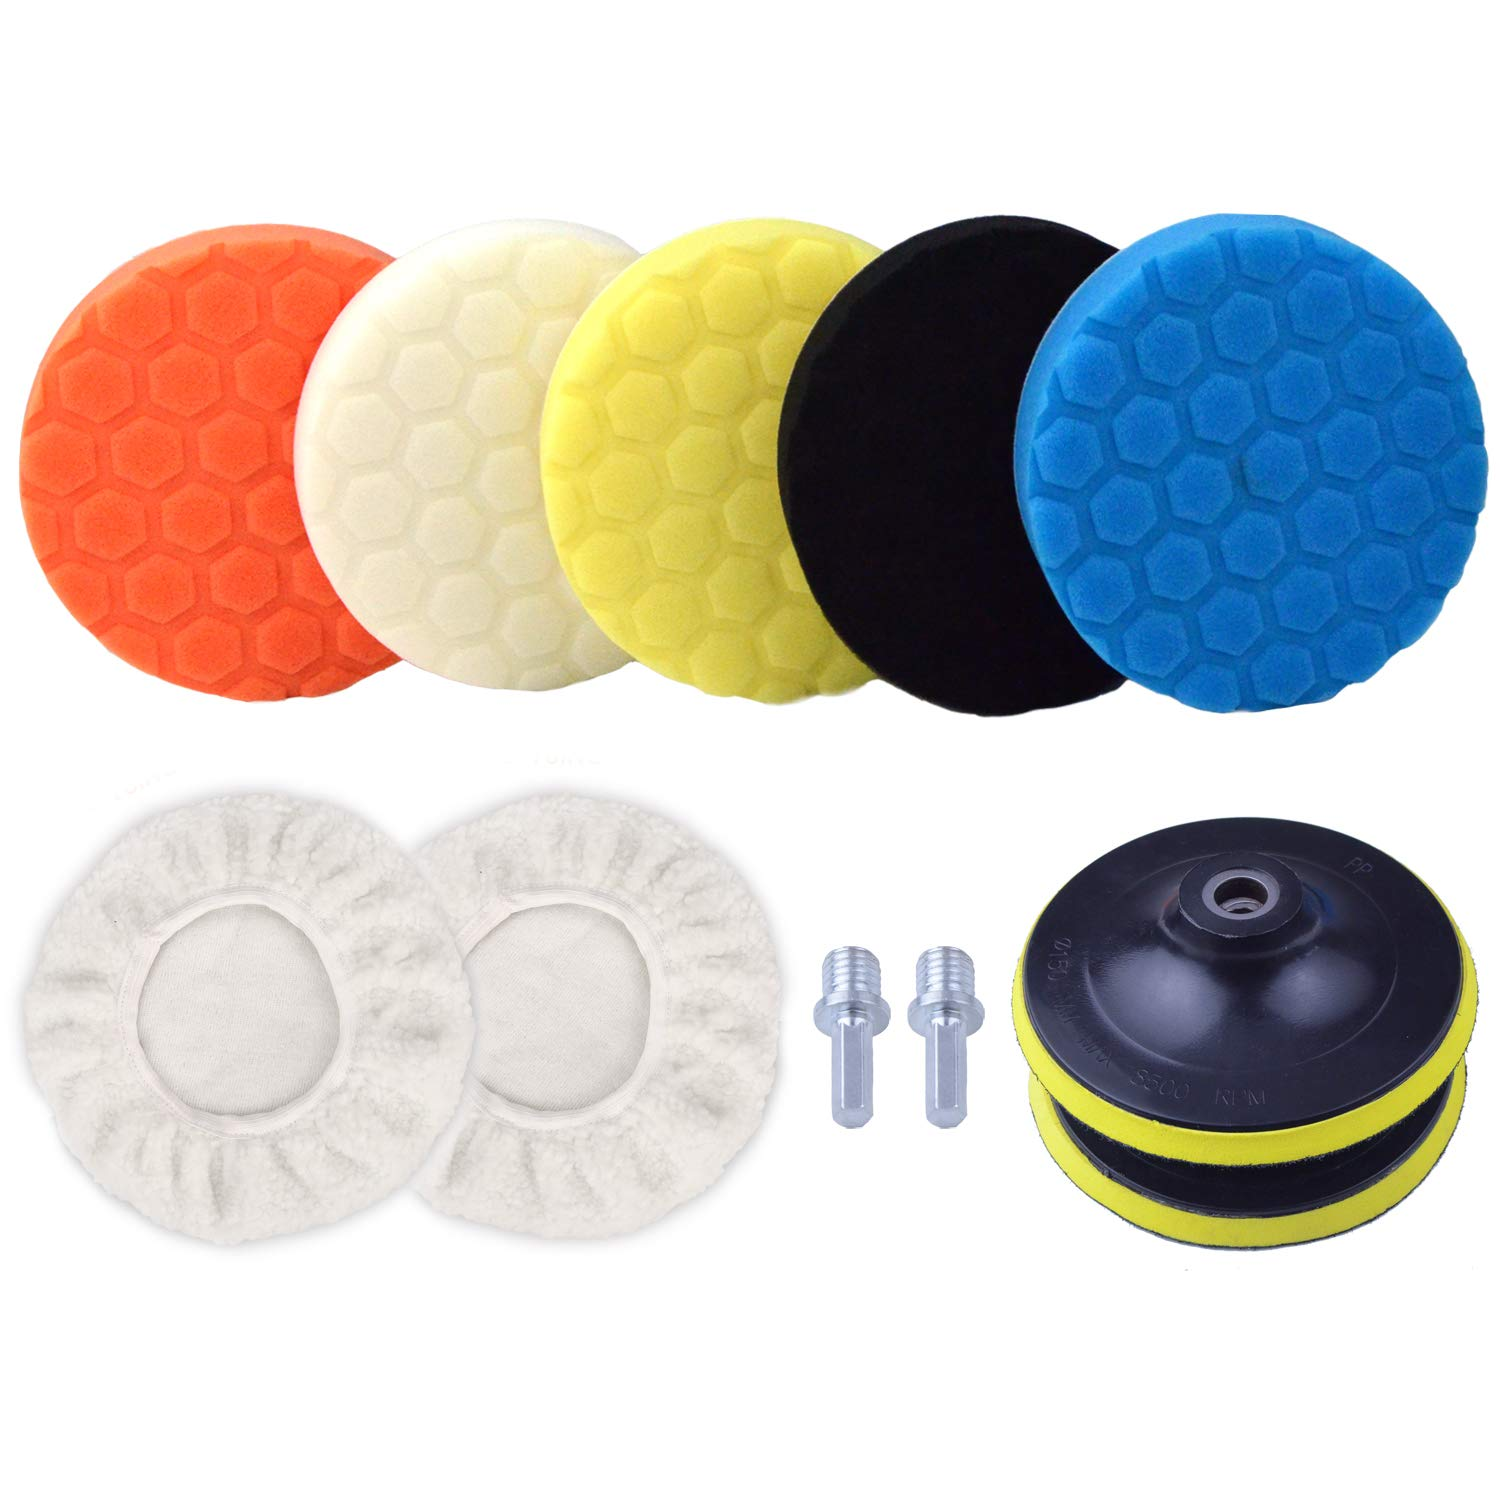 POLIWELL 6 Inch Car Polishing & Buffing Sponge Pads Kit Wool Bonnet Pads for Household Electric Drill and Auto Polisher with 8mm M14 Drill Adapter for Washing Cleaning Waxing Dusting, 11PCS